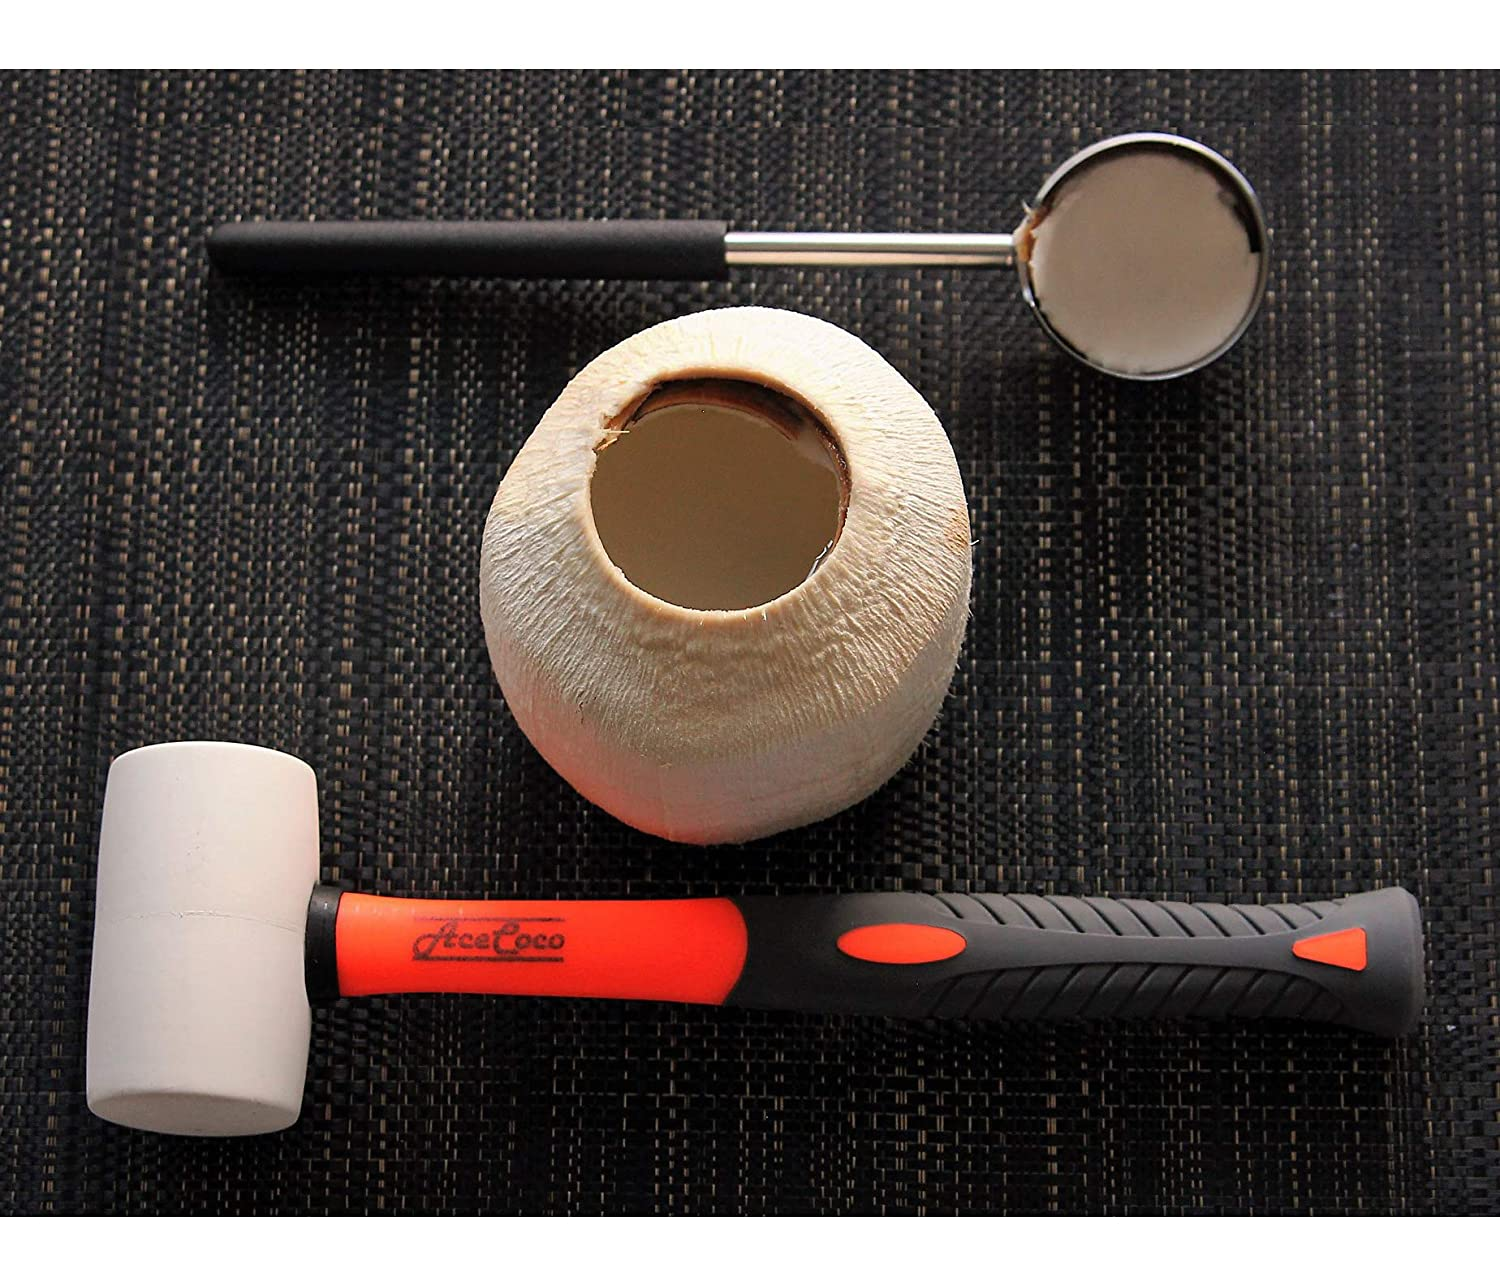 [2018 Version] Coconut Opening Tool Set. Food Grade Stainless Steel tool and Wooden Hammer/Mallet / Gavel to open Young Cocoanuts. Safe Home & Kitchen opener to cut a hole - #1 Hammer AceCoco